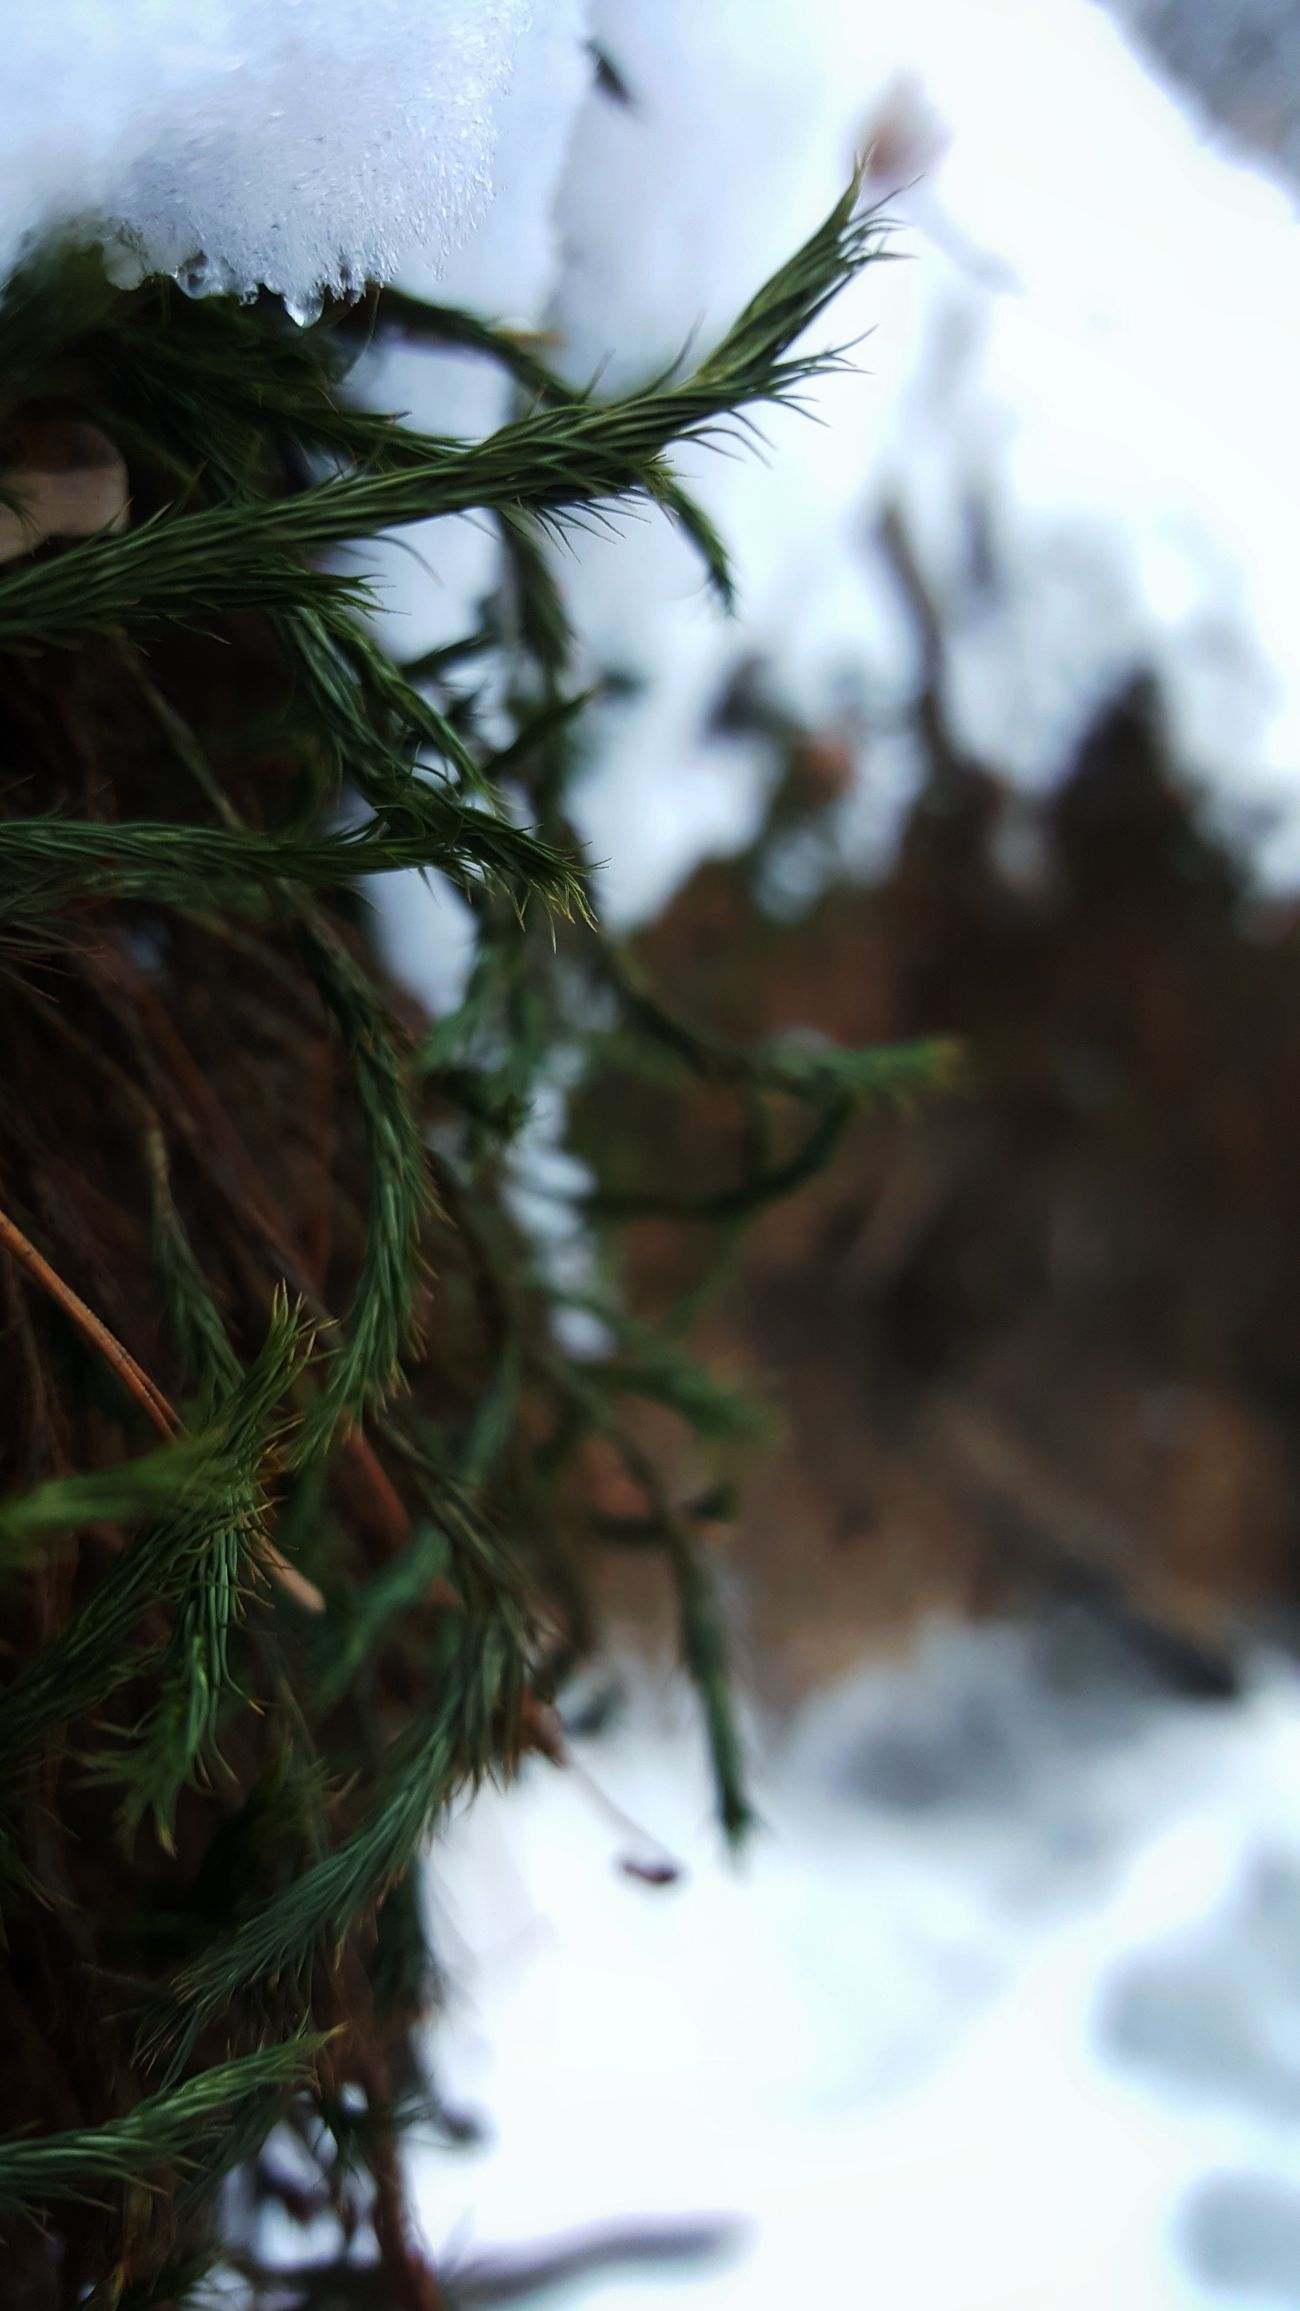 Beauty In Nature Close-up Cold Temperature Day Freshness Growth Nature Outdoors Plant Poland Snow Winter Winter